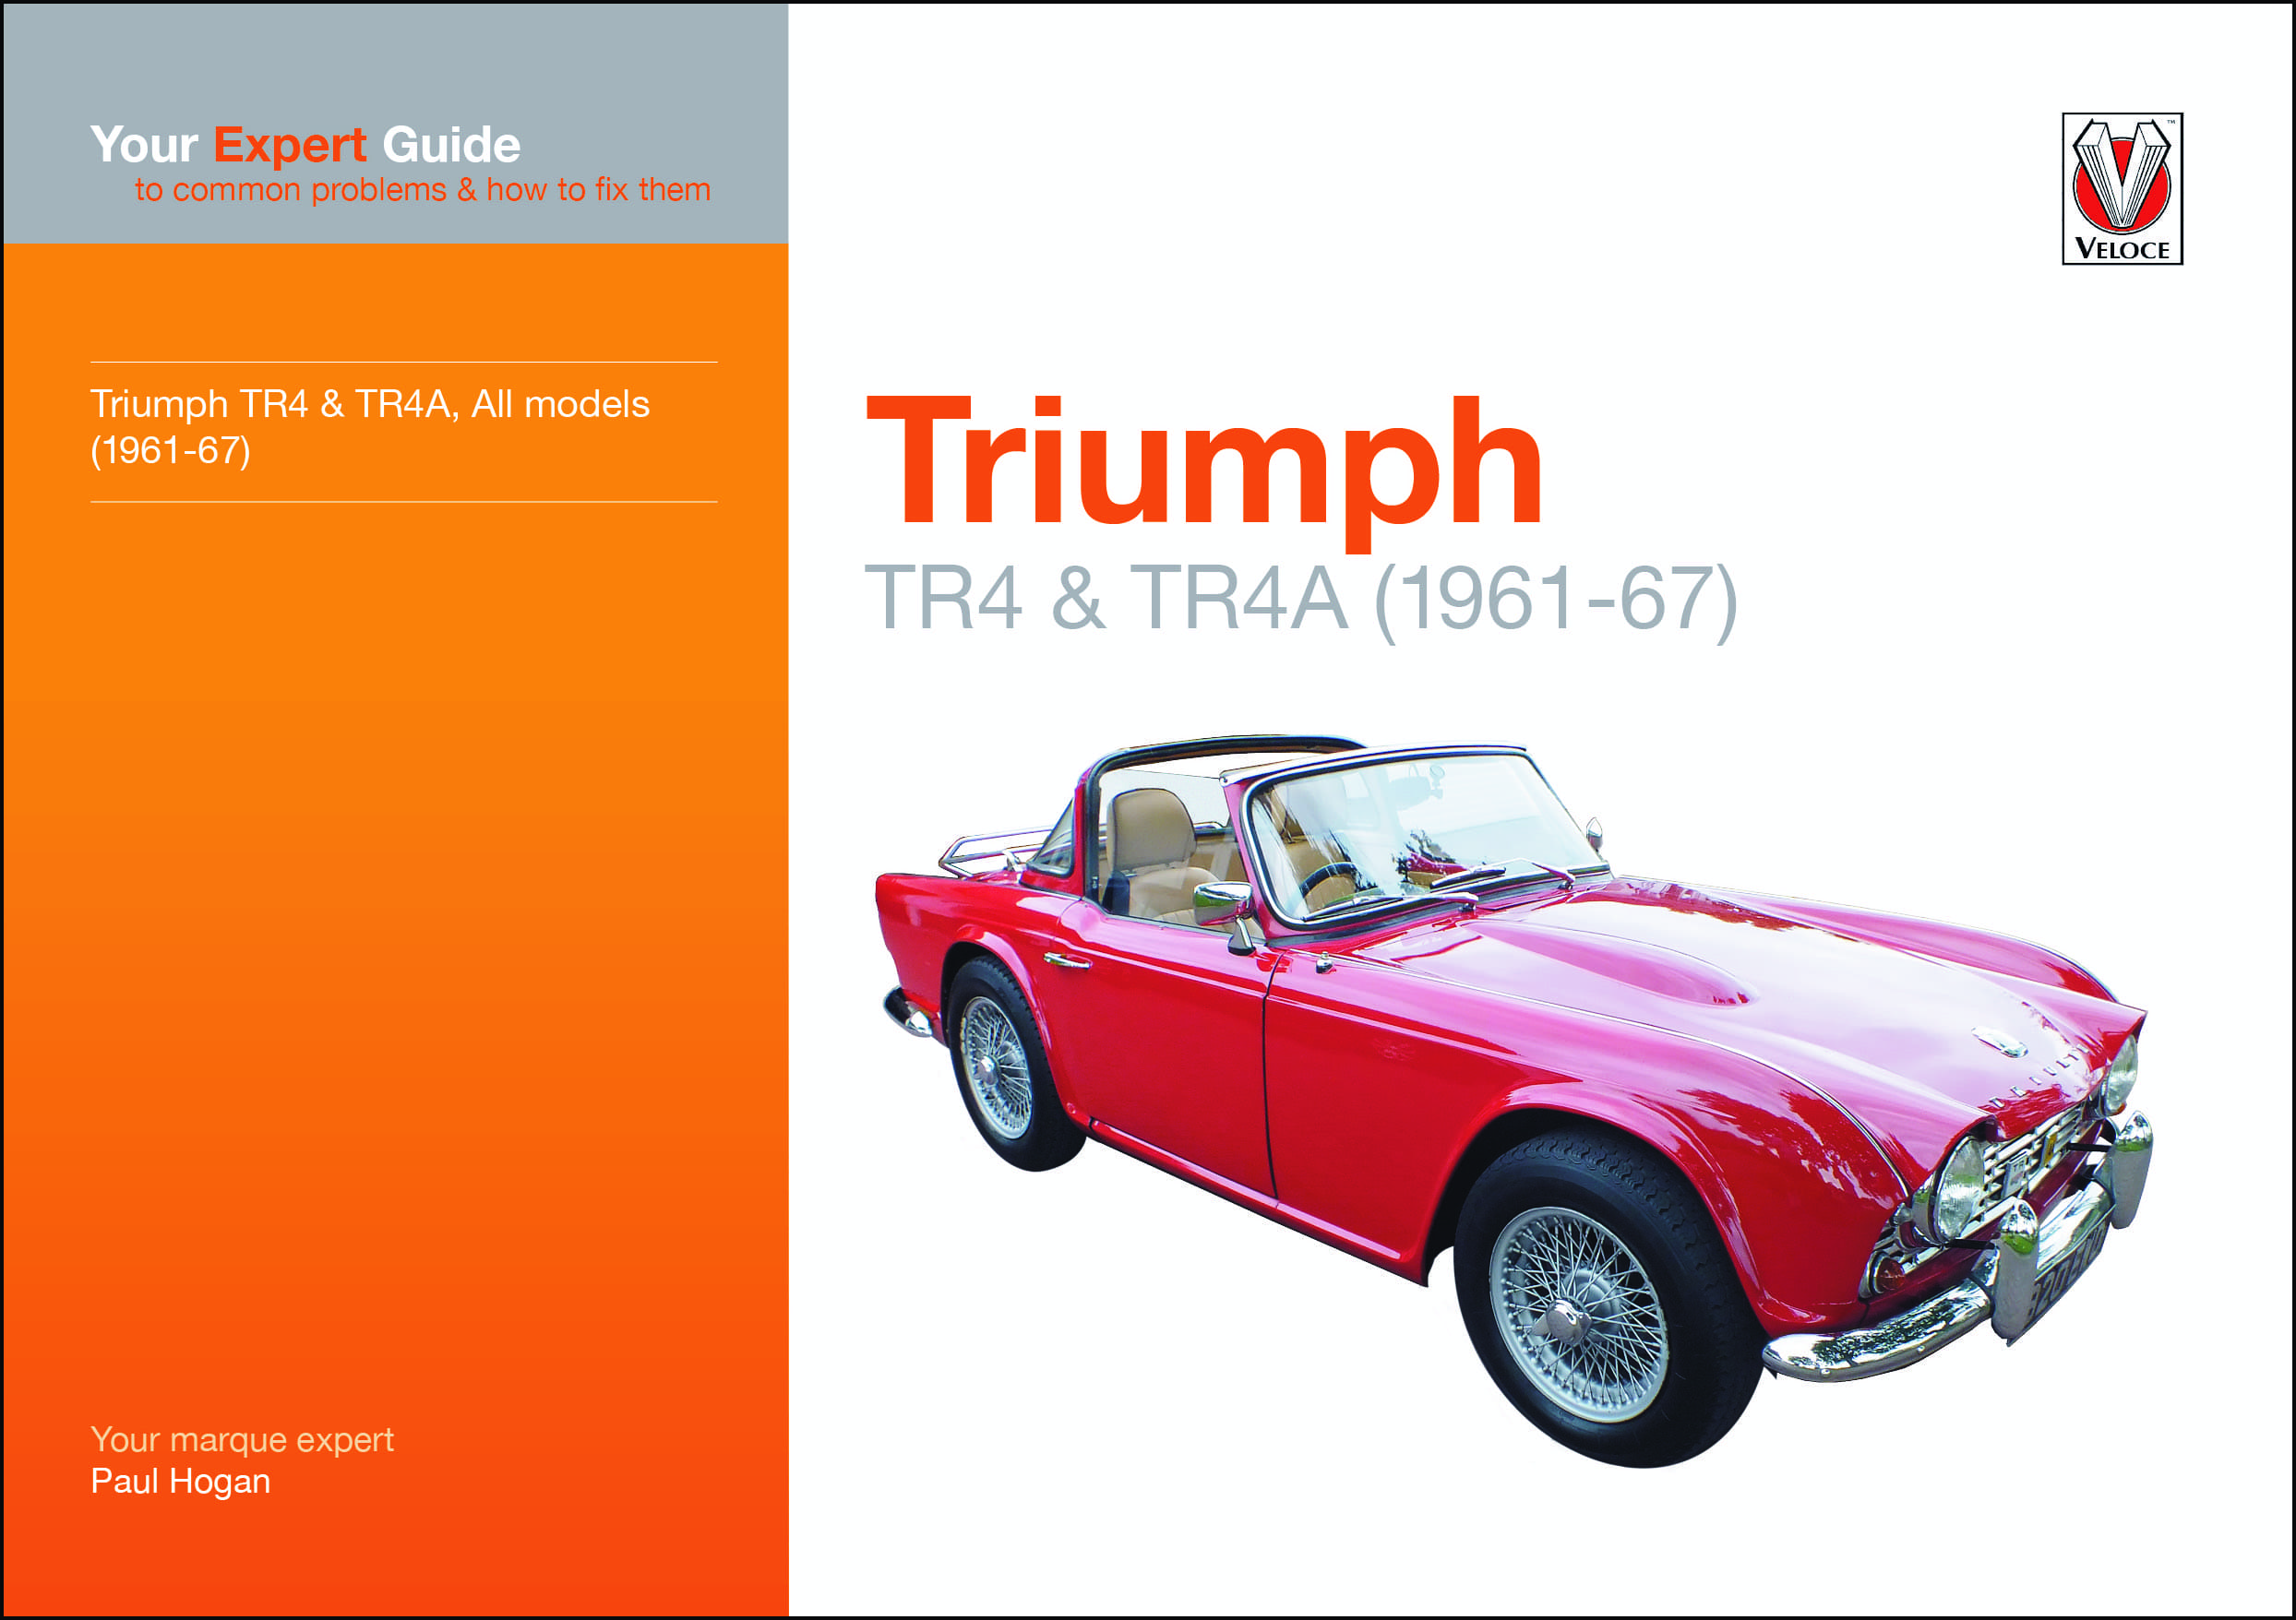 Triumph TR4 and TR4A Expert Guide